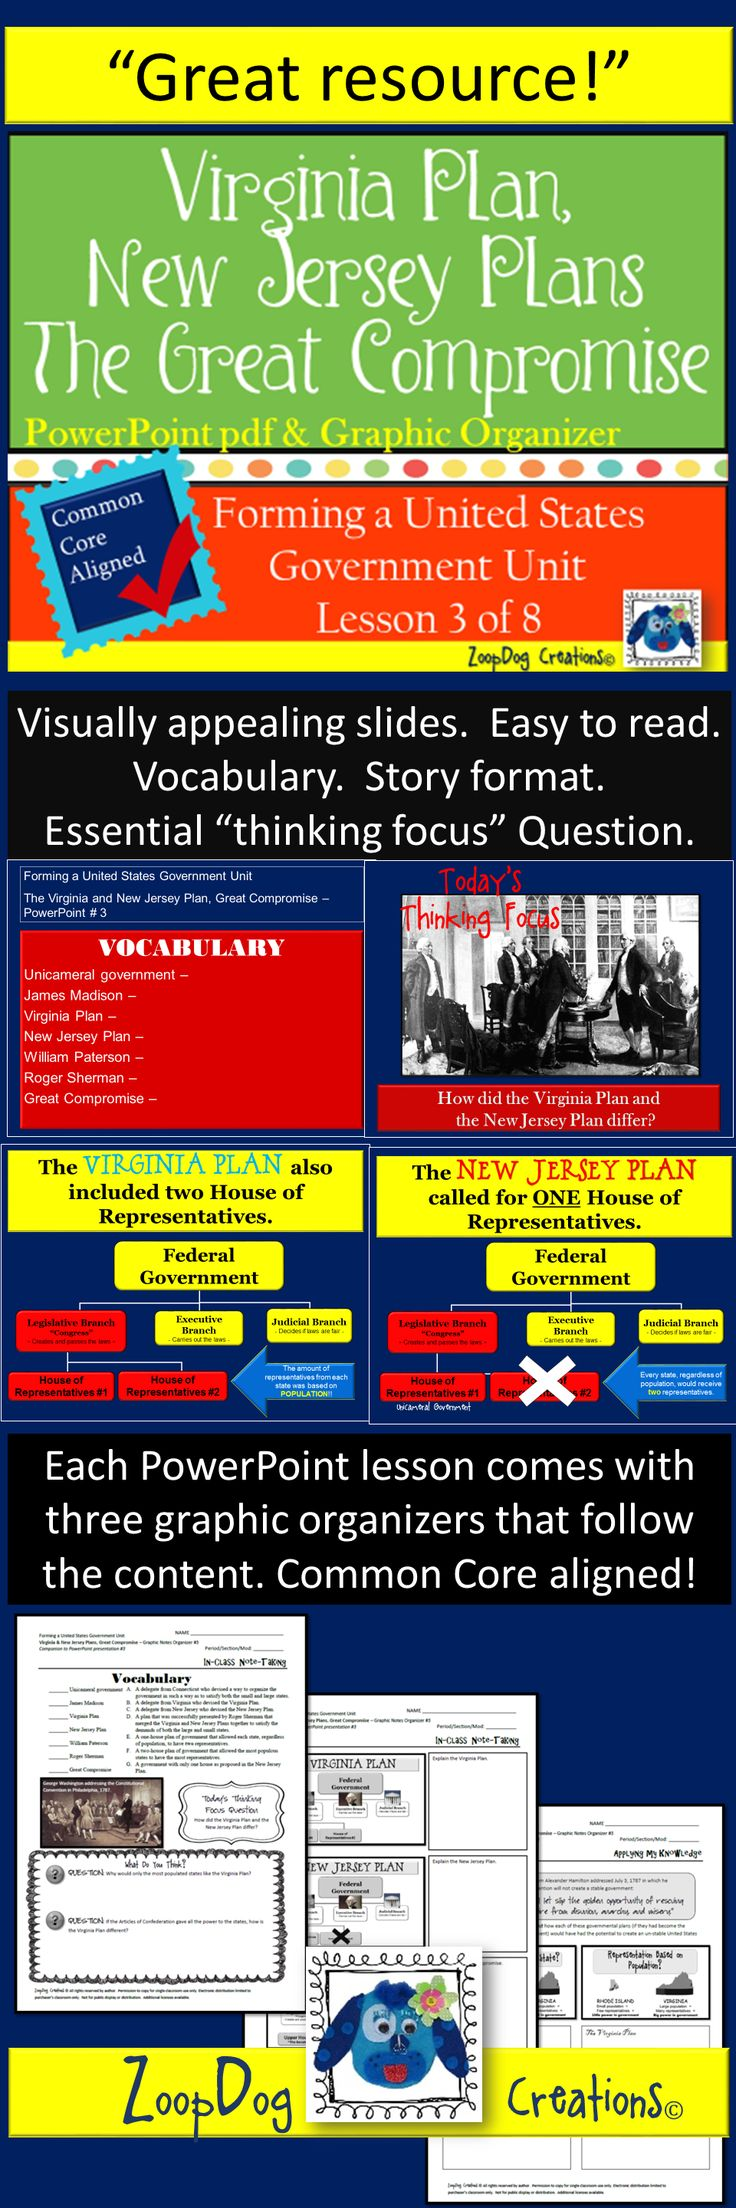 Forming a United States Government. Virginia Plan. New Jersey Plan. The Great Compromise. This PowerPoint presentation is perfect for your middle school classroom! Visually appealing slides, easy to read and understand, includes a 3-page graphic organizer that matches perfectly with the content presented in the PowerPoint. Take a look!